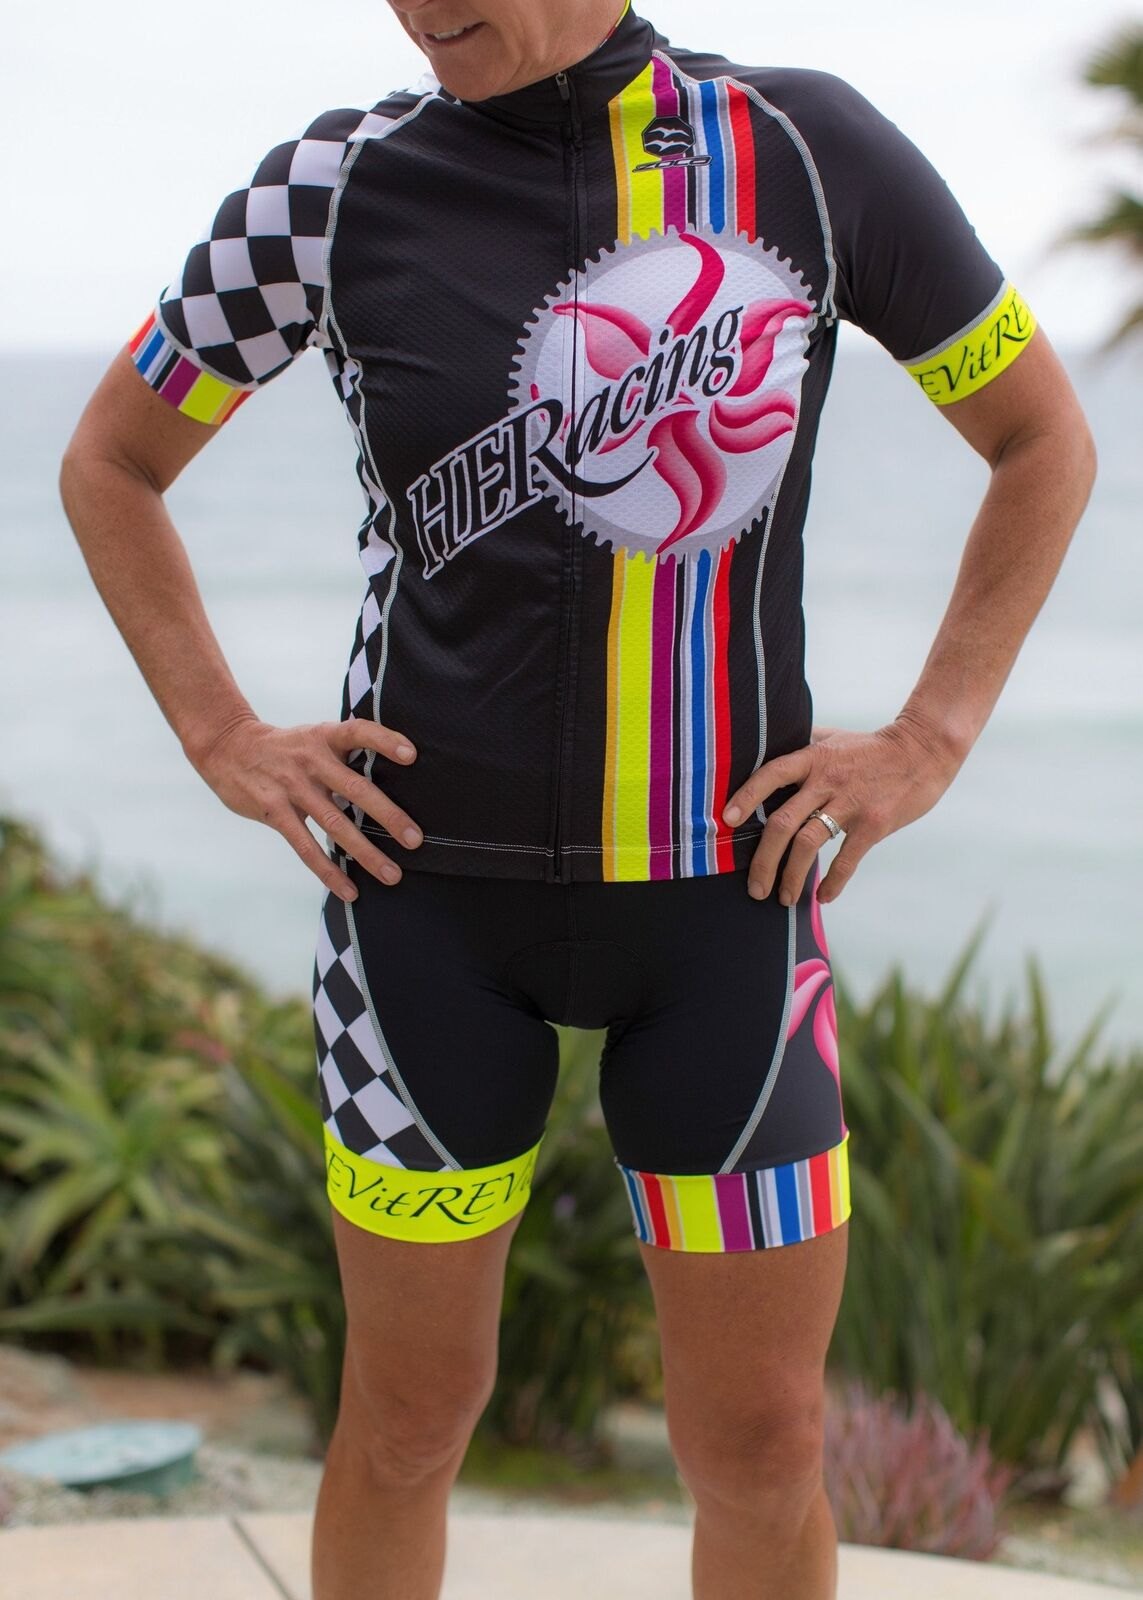 HERevolution HERacing Woman's Cycling Jersey